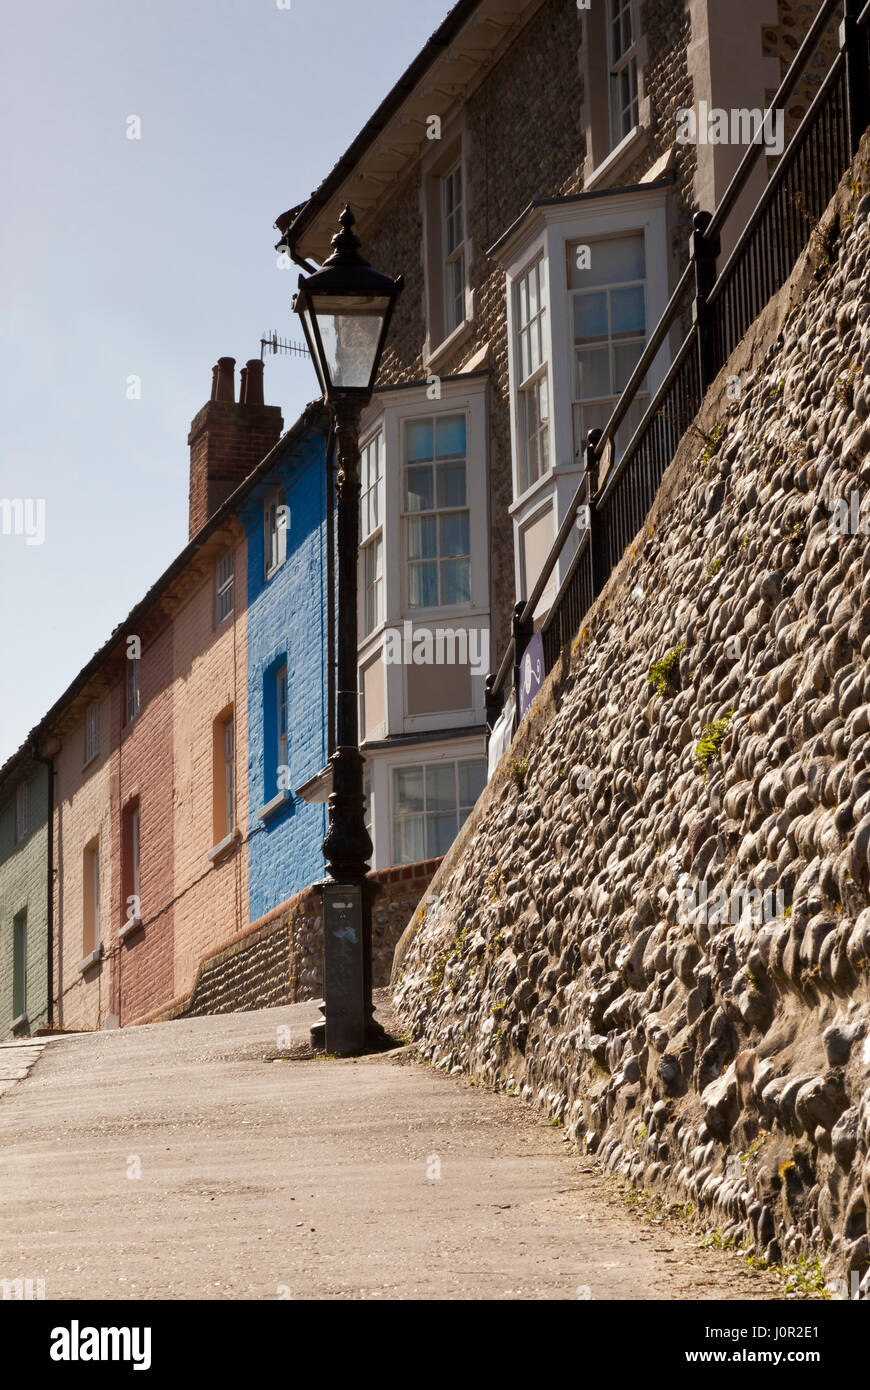 Fisherman's cottages in the Norfolk seaside town of Cromer - Stock Image